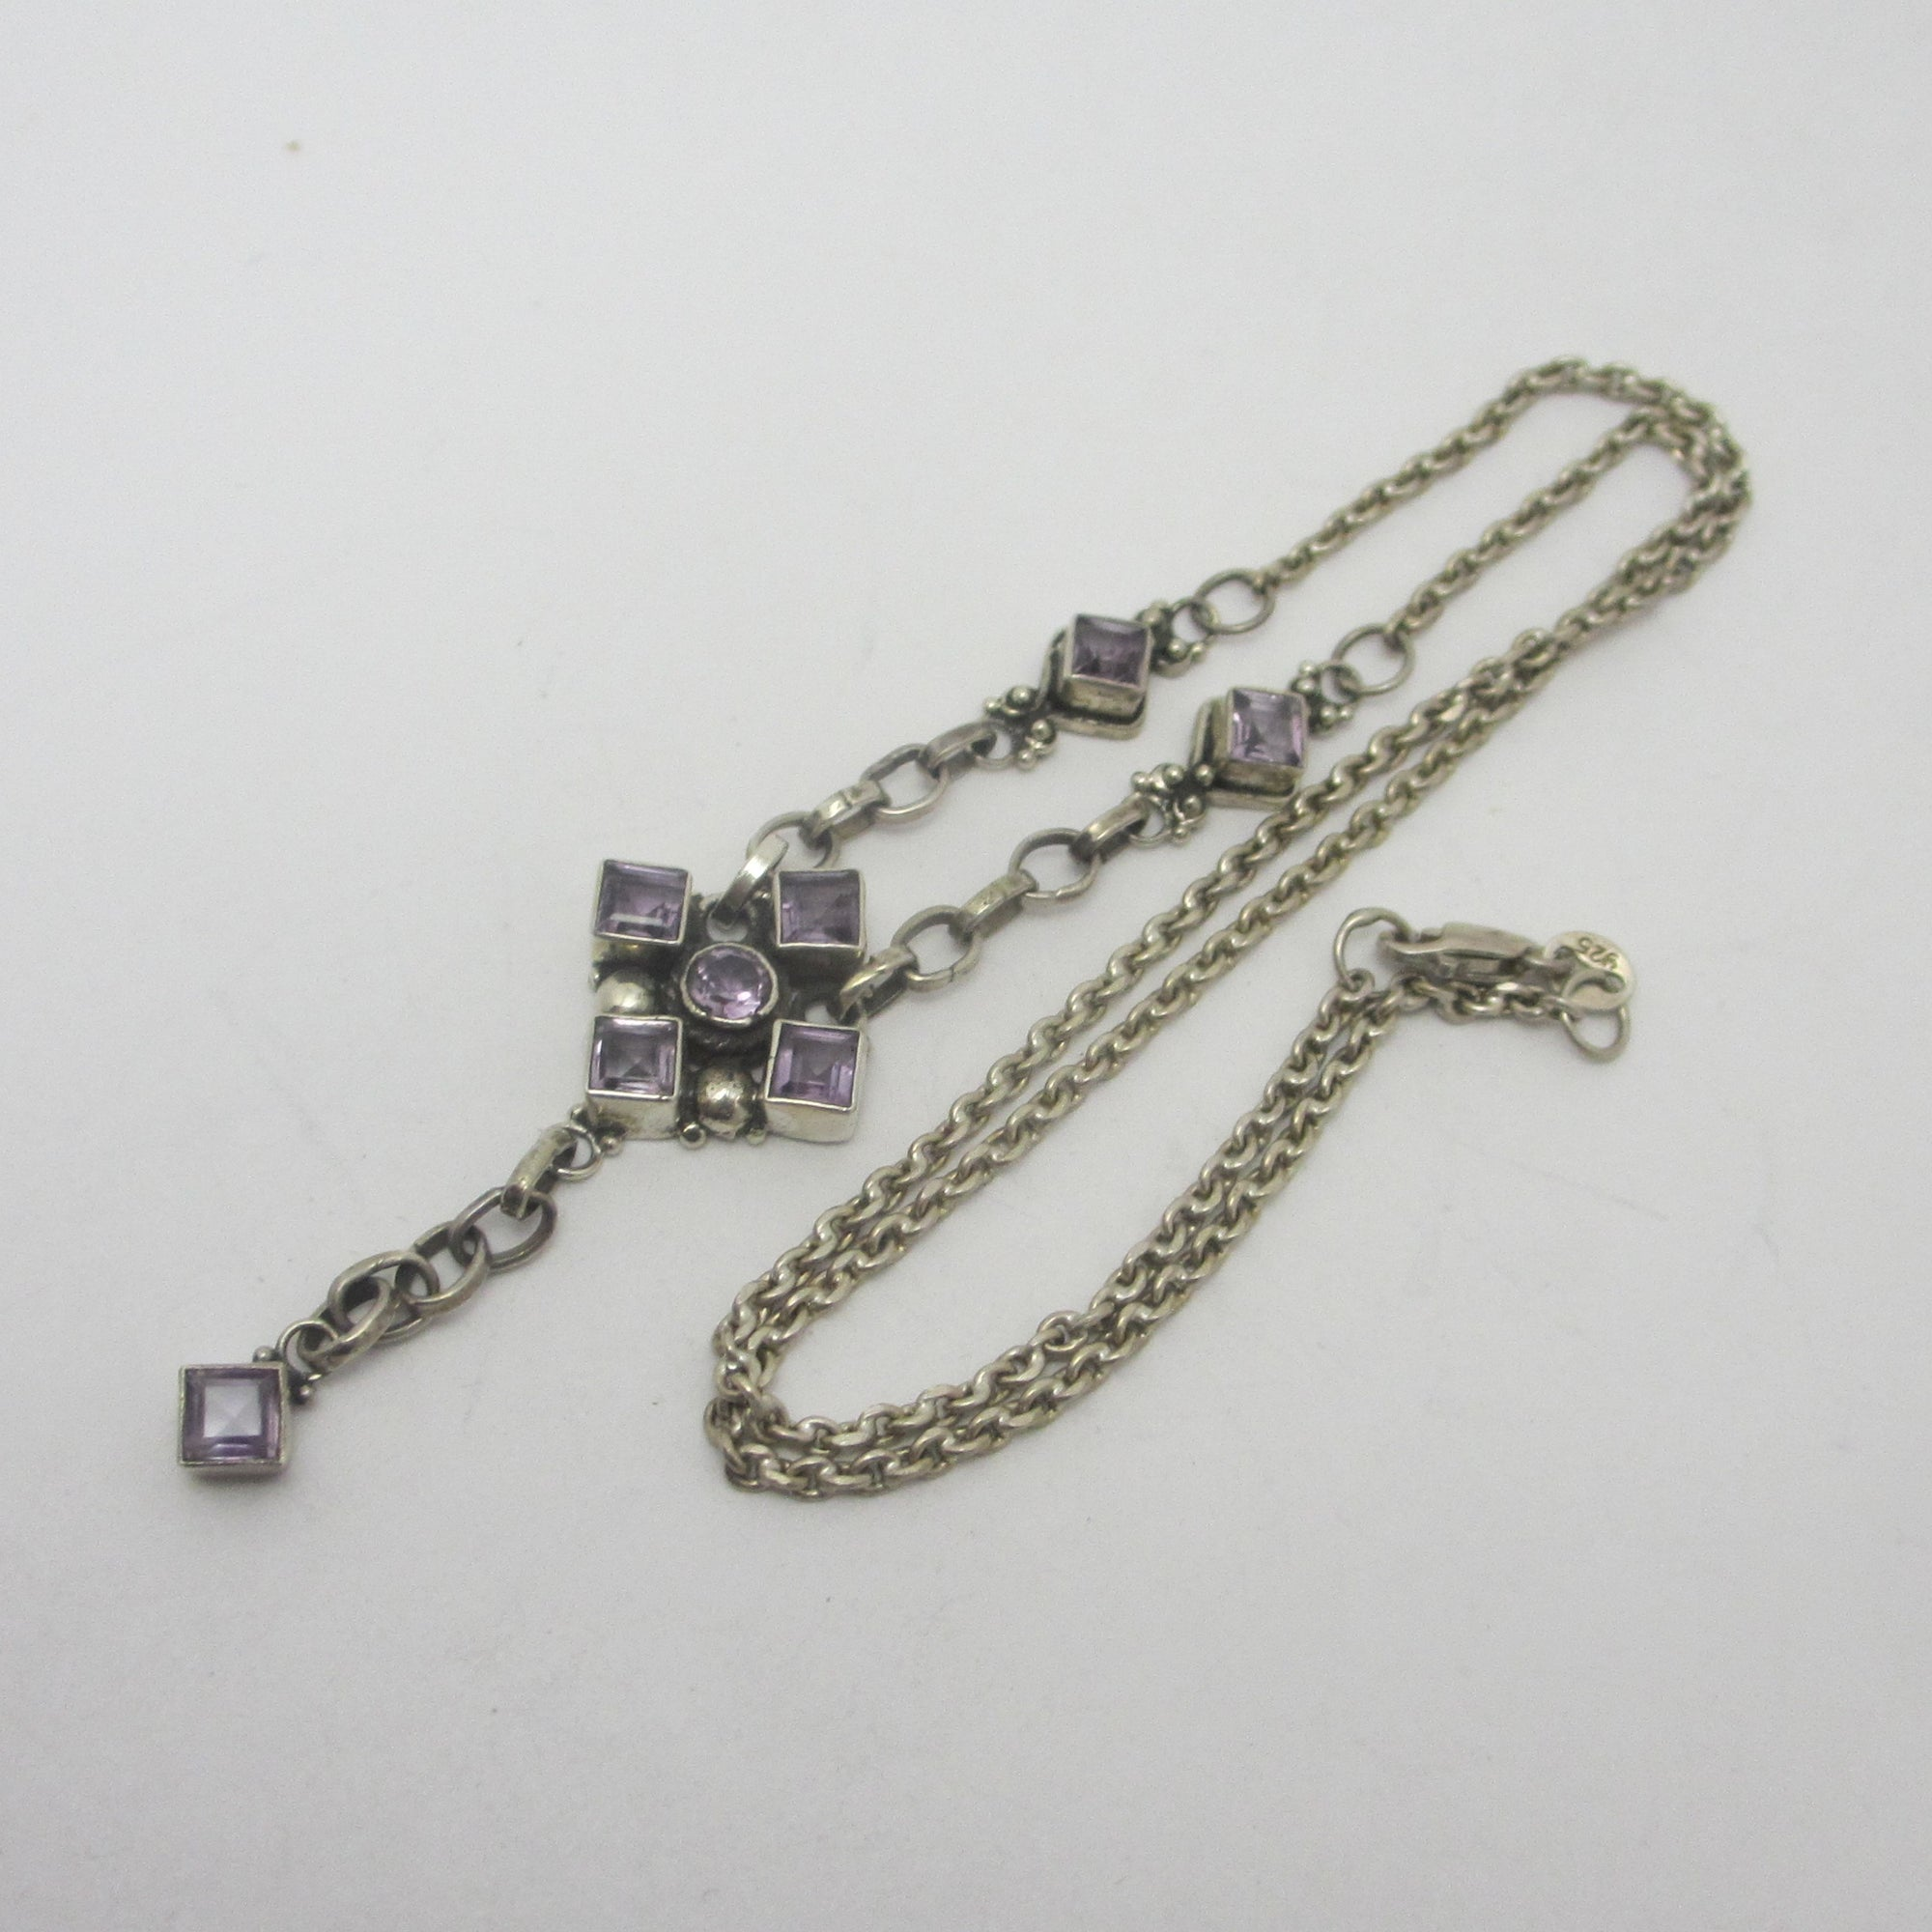 Amethyst in Sterling Silver Dangling Pendant Necklace Vintage c1980